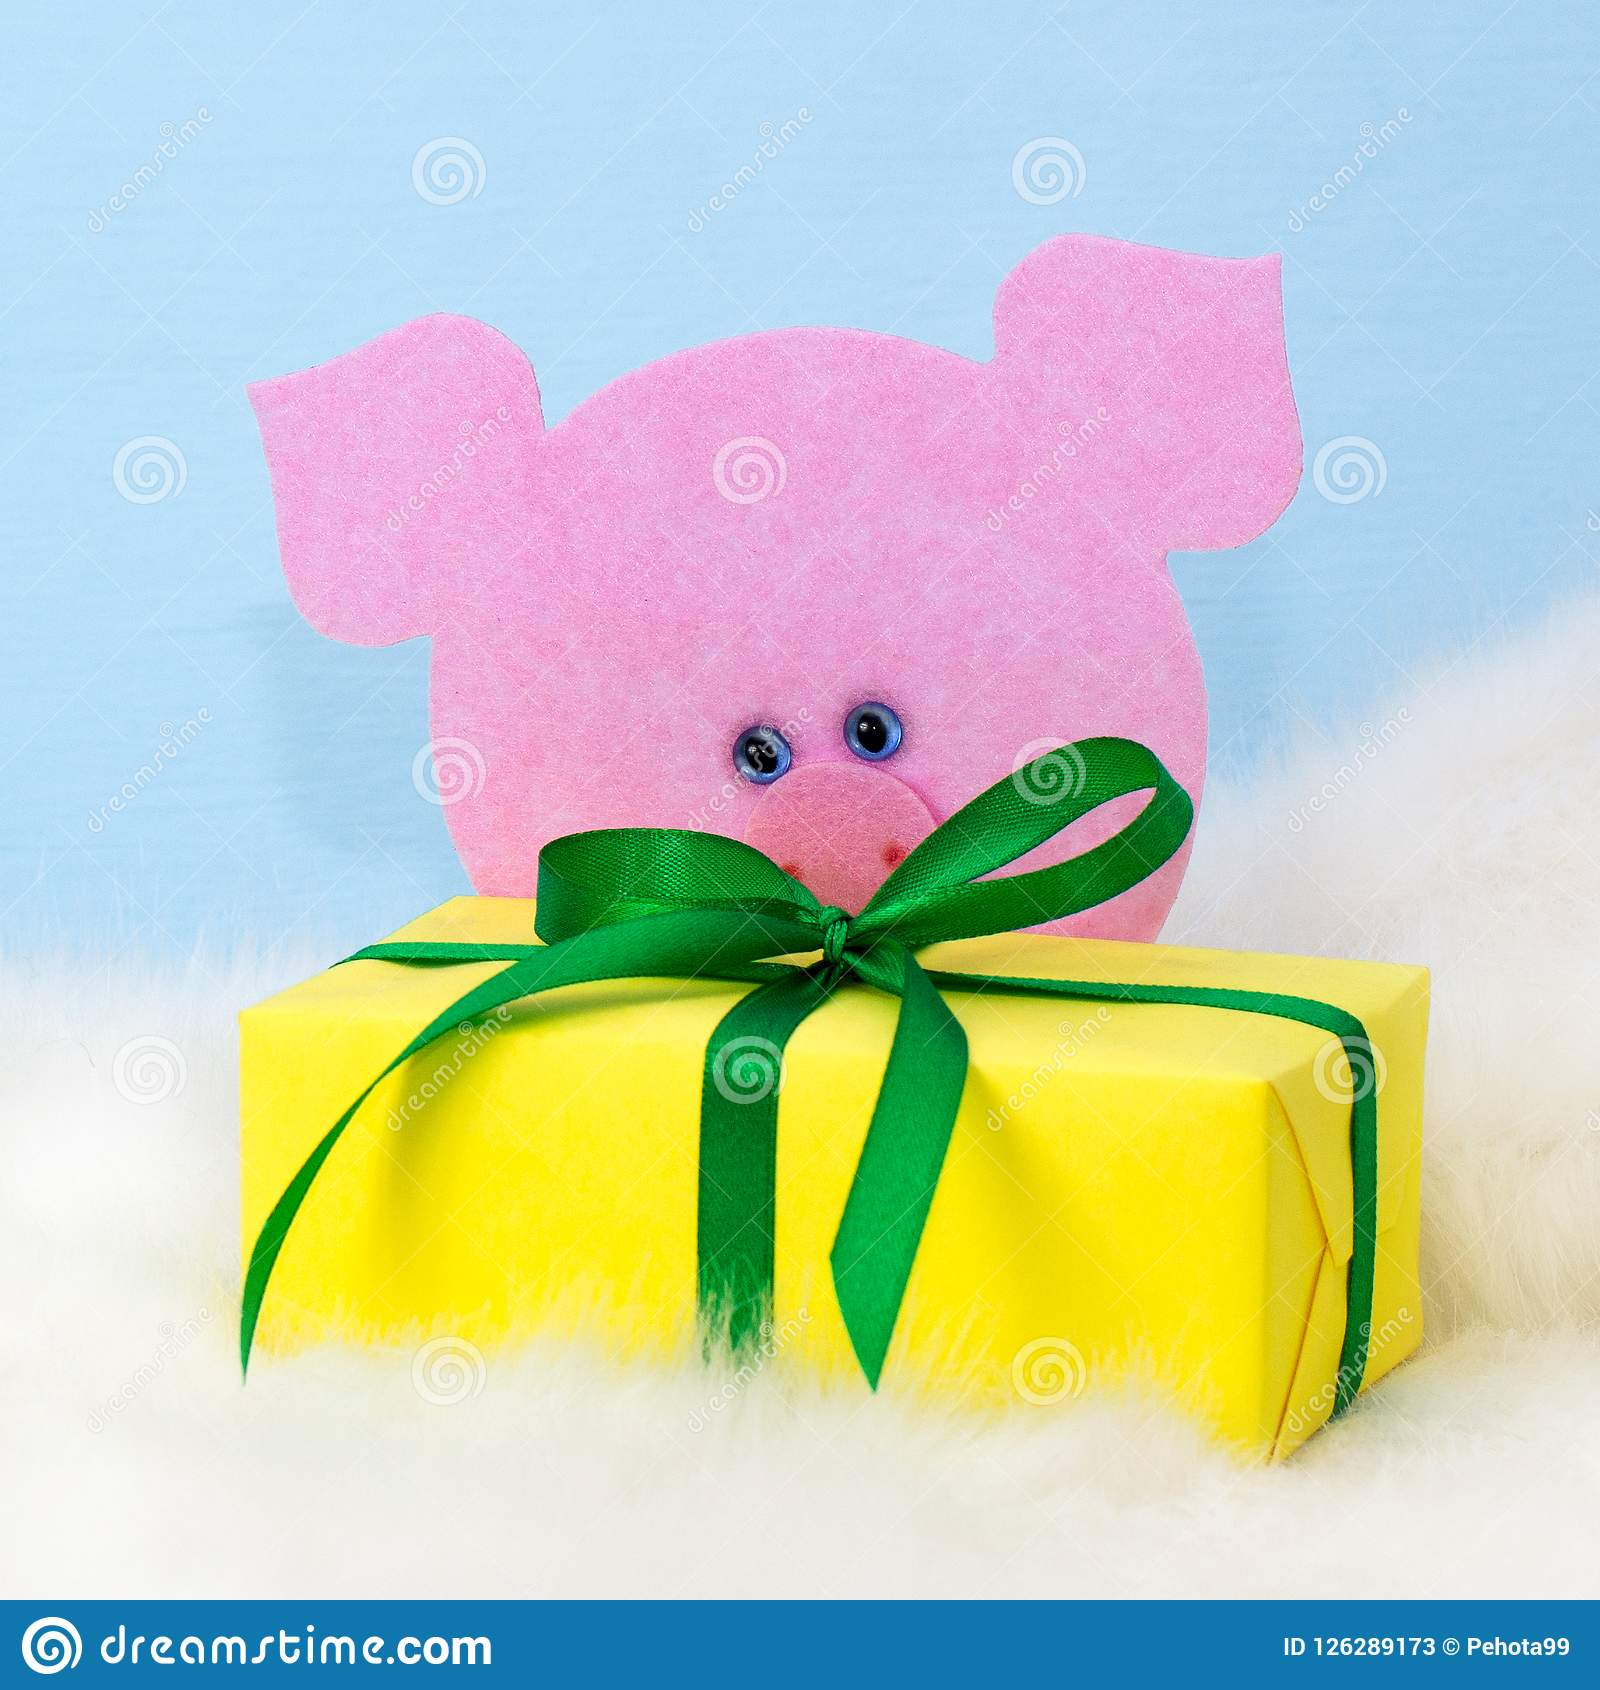 Christmas Gift Funny Pink Piggy Symbol Chinese New Year Stock Image ...